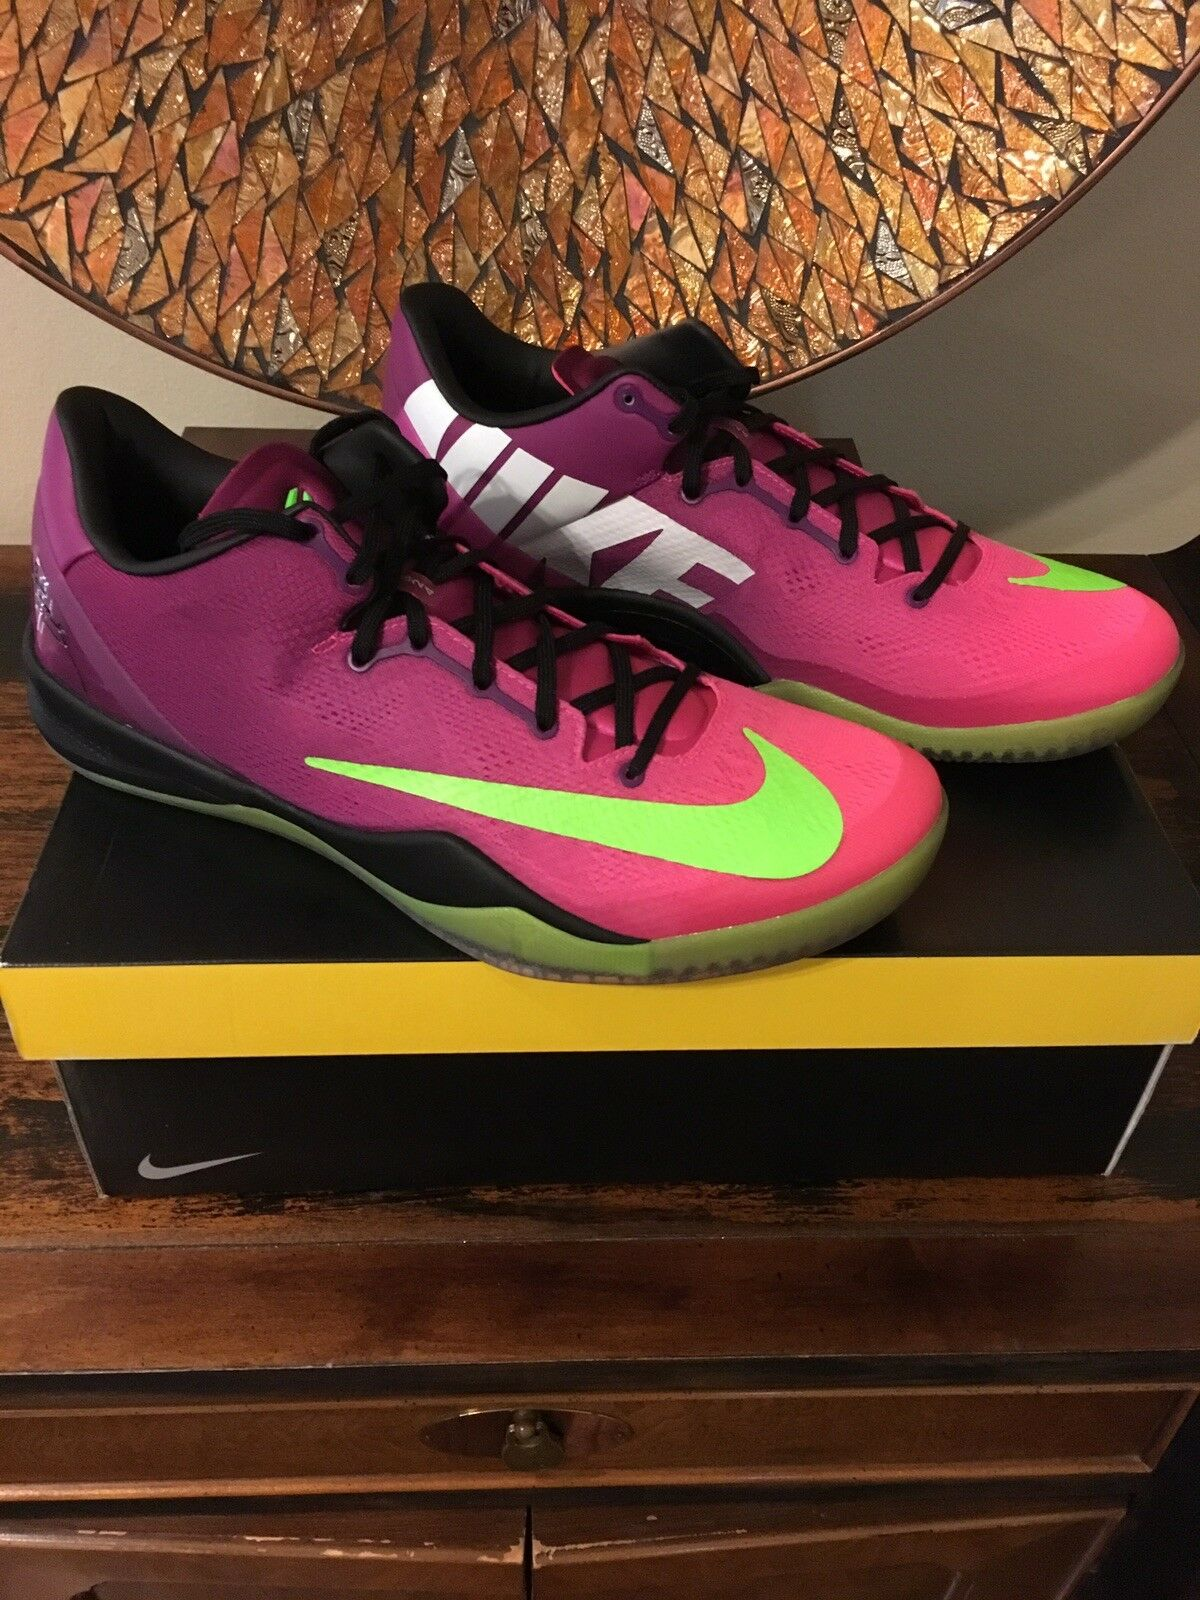 Nike Kobe 8 Mambacurial Size 13 DS